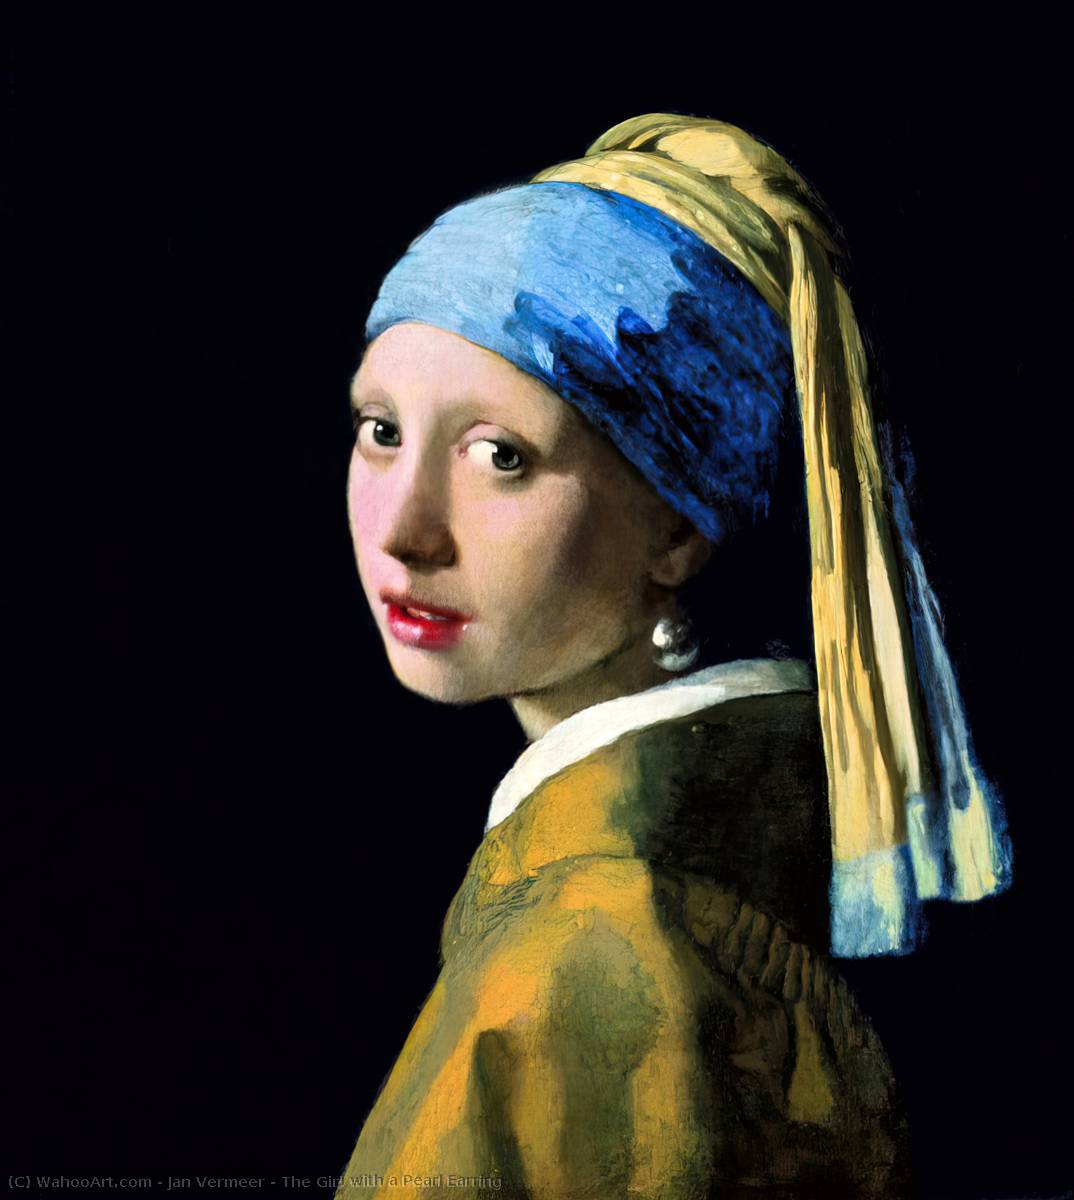 famous painting The Girl with a Pearl Earring of Jan Vermeer